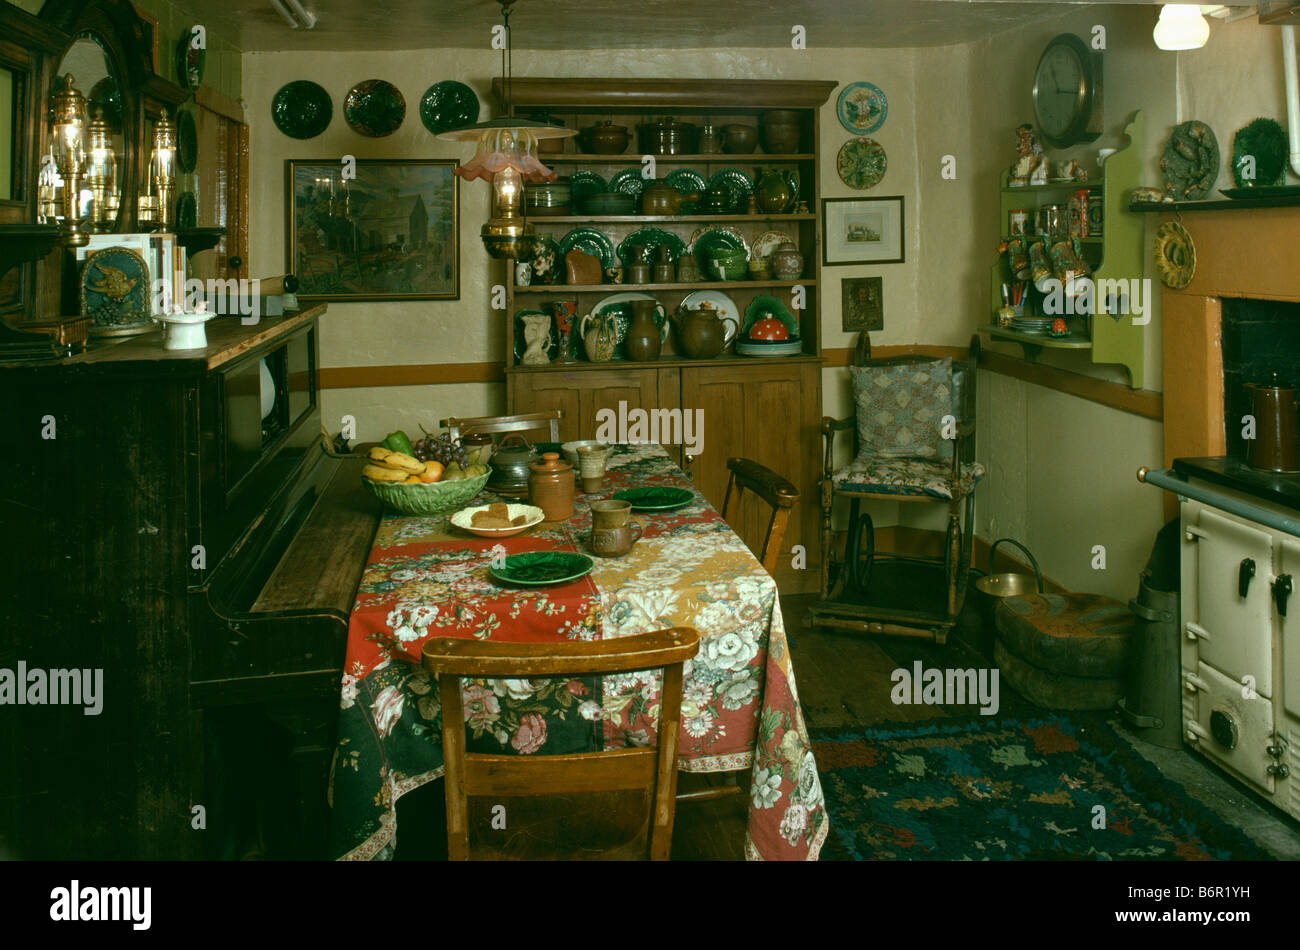 Piano And Table With Floral Cloth In Dark Old Fashioned Kitchen